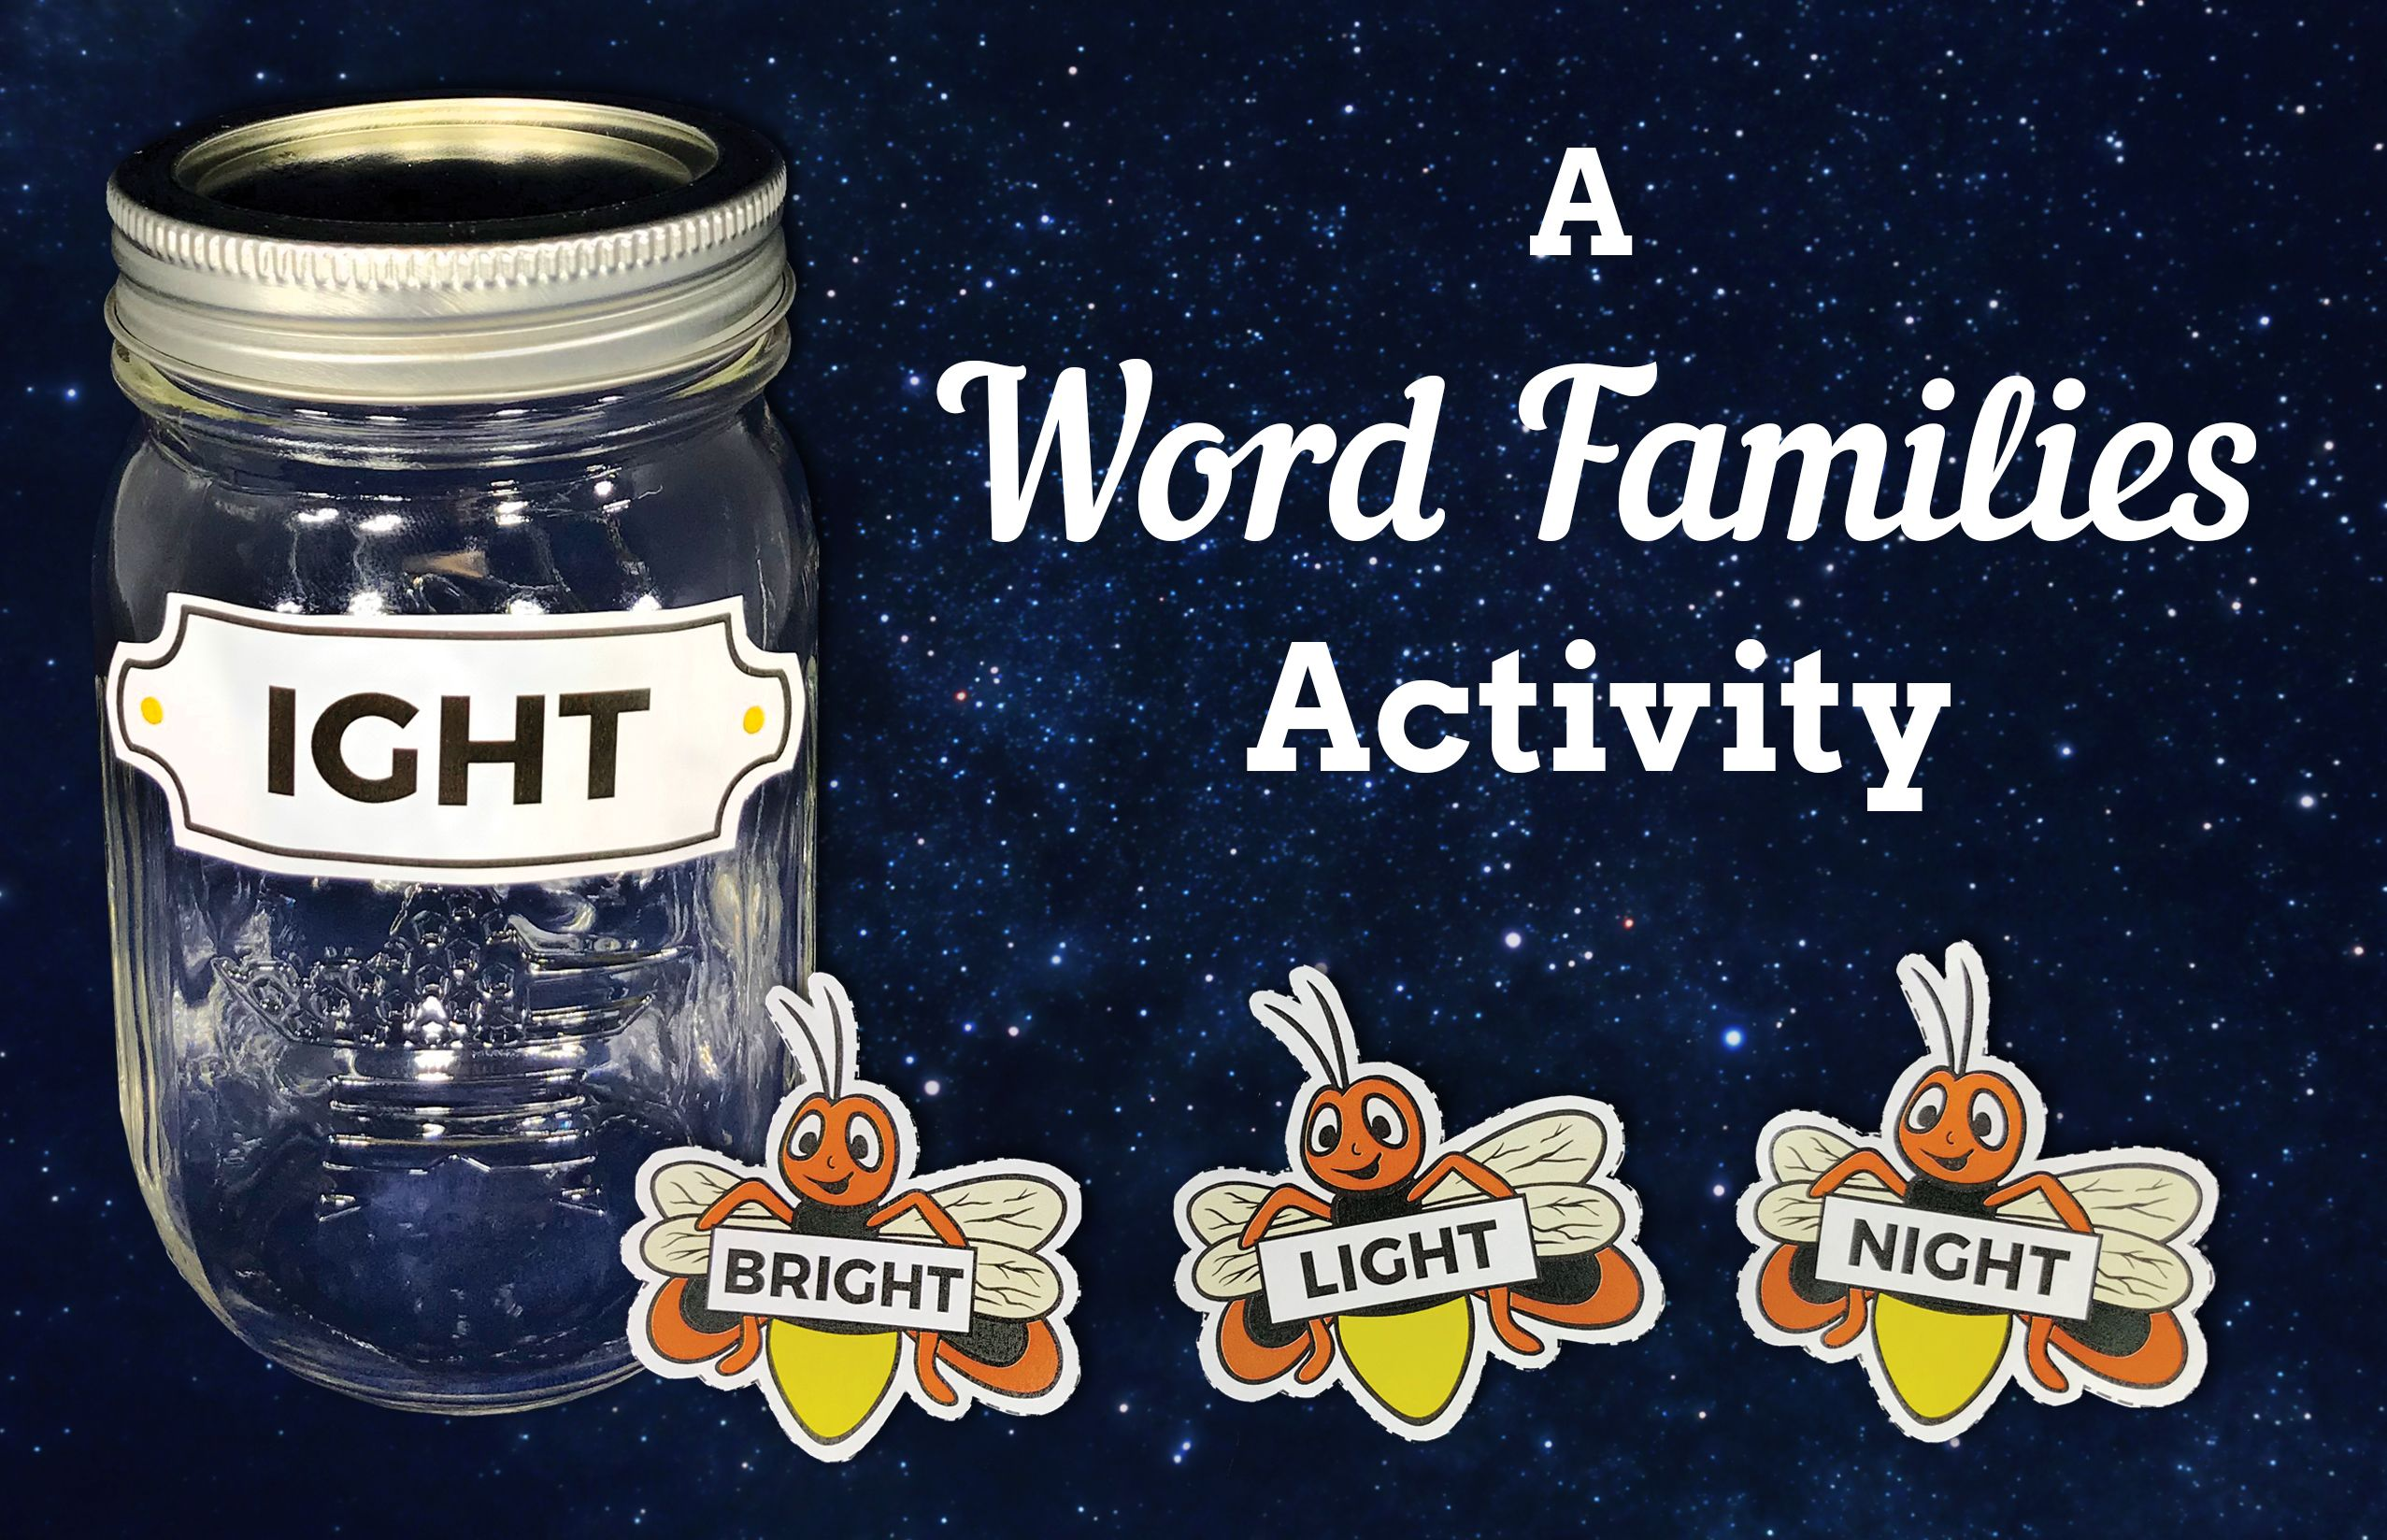 Check Out This Firefly Wordfamilies Activity From The